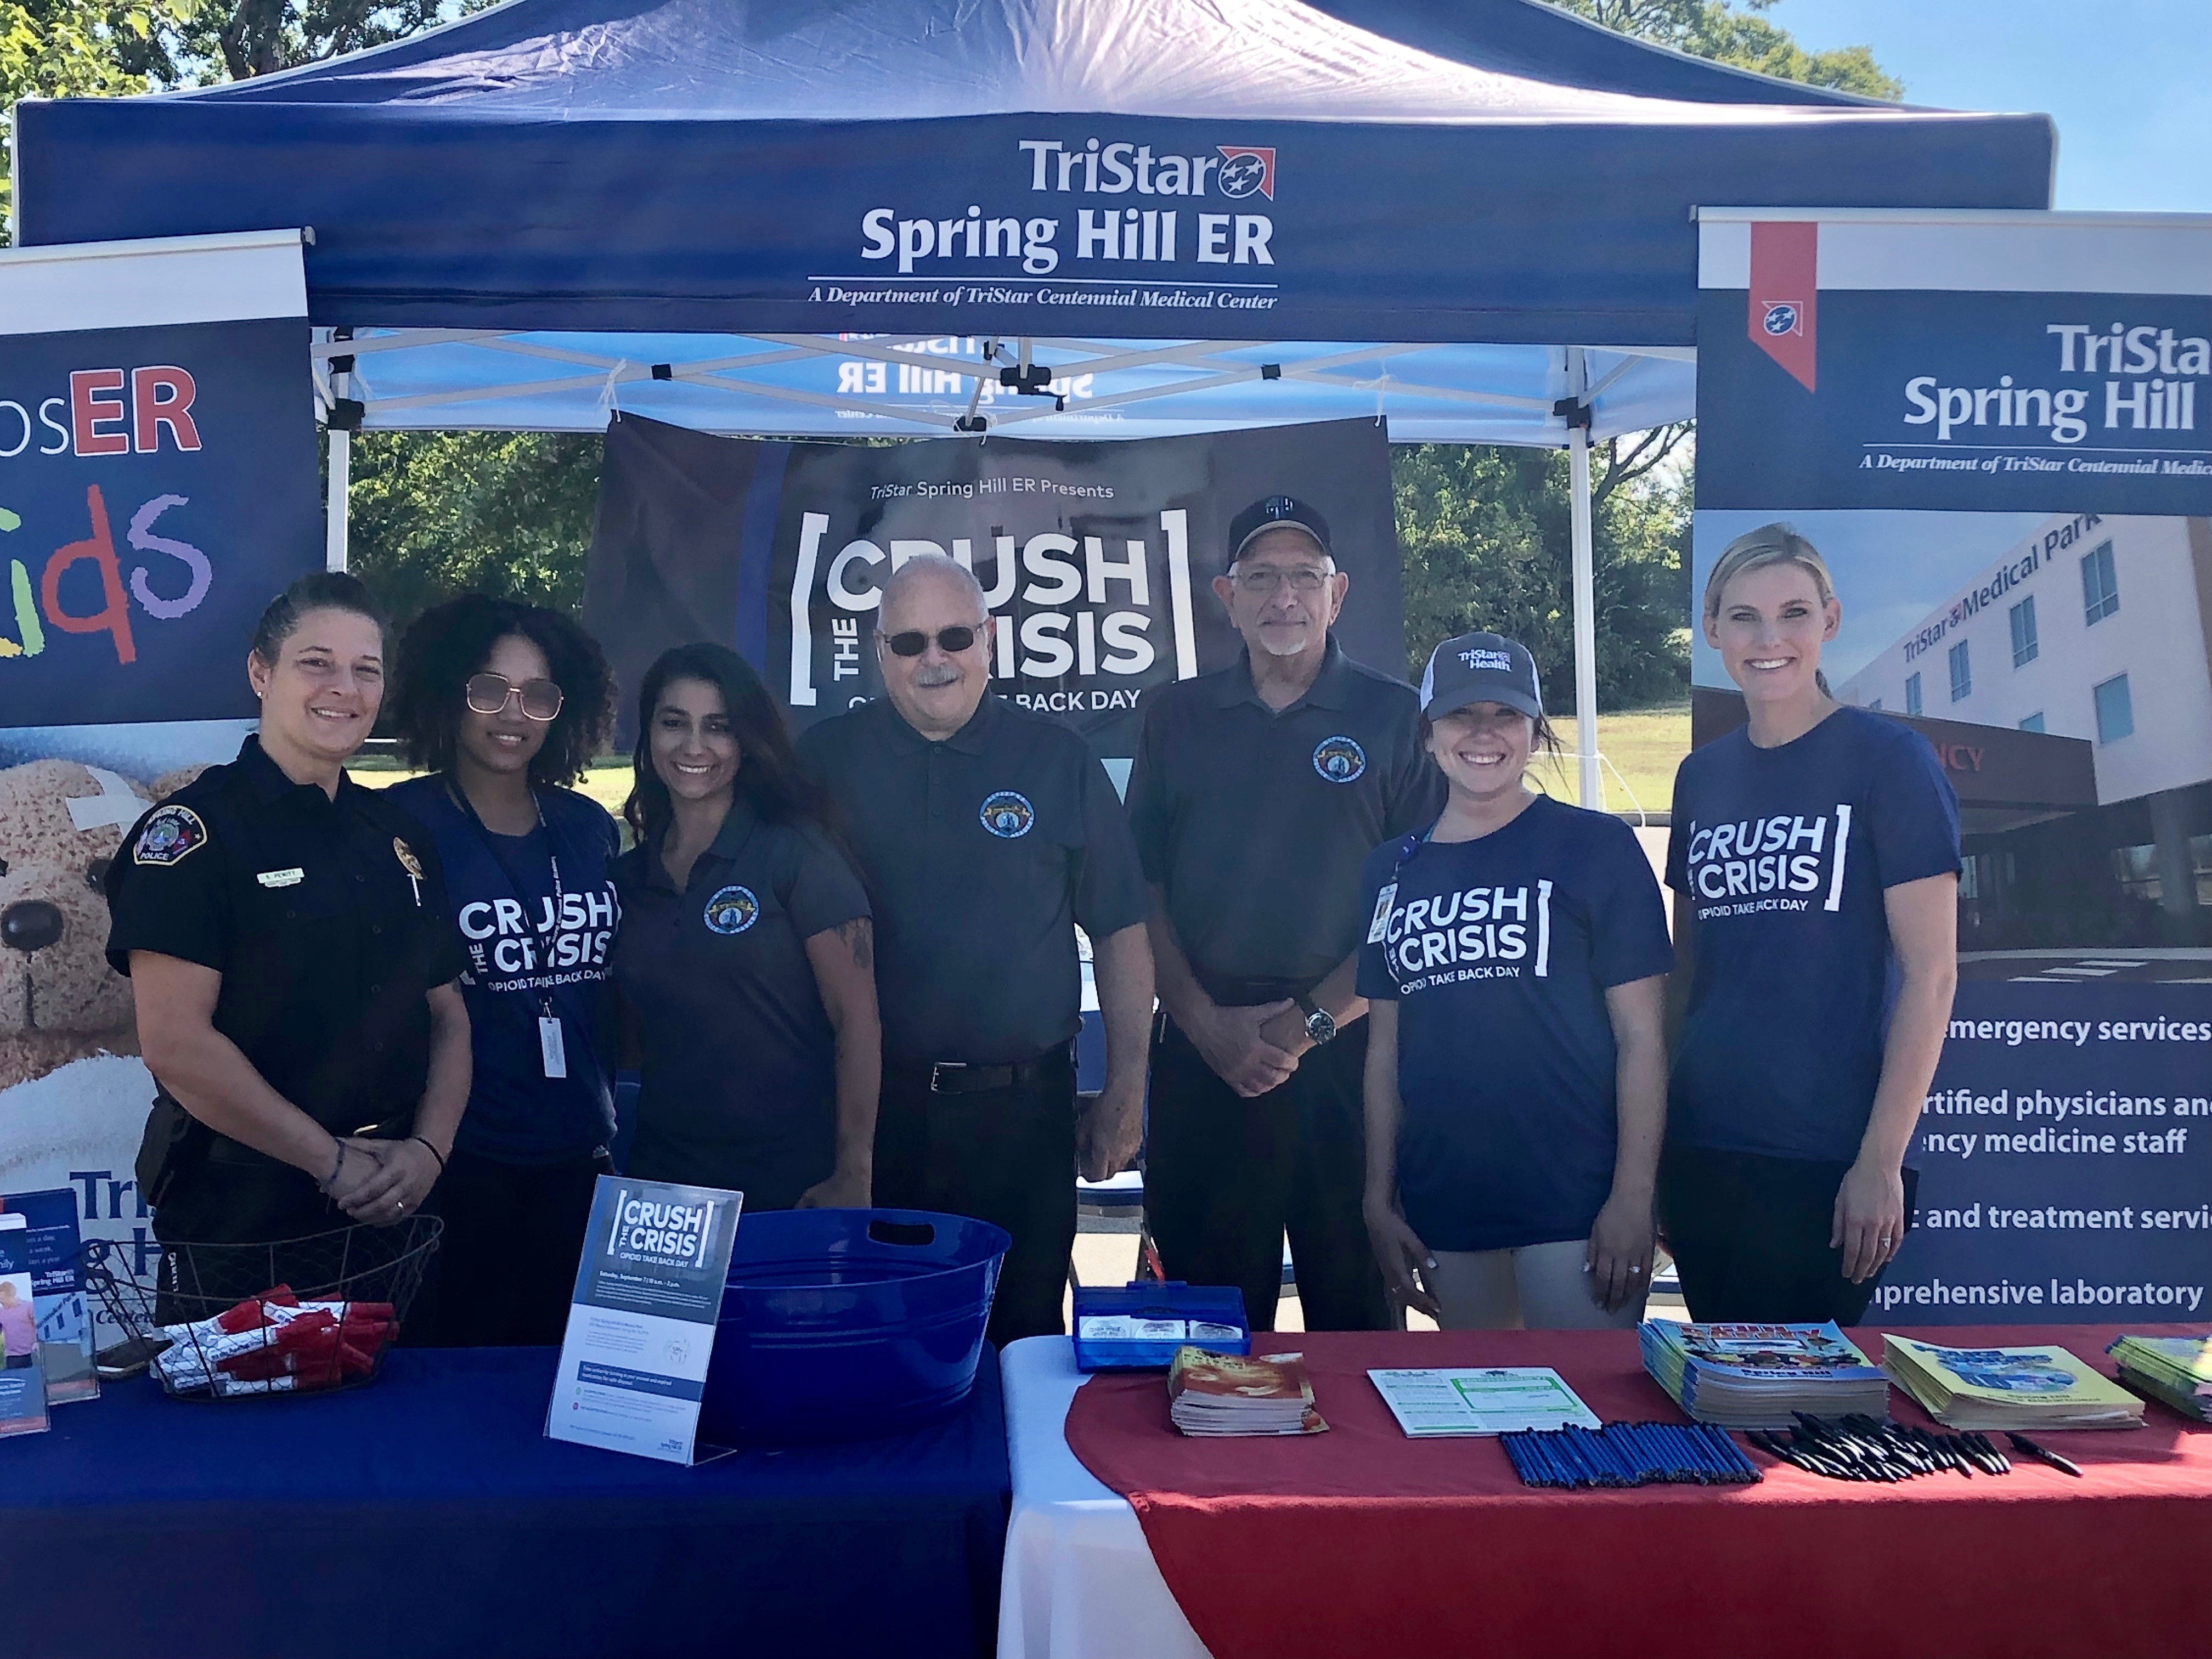 TriStar Spring Hill ER collected more than seven pounds of opioid medications at take back event